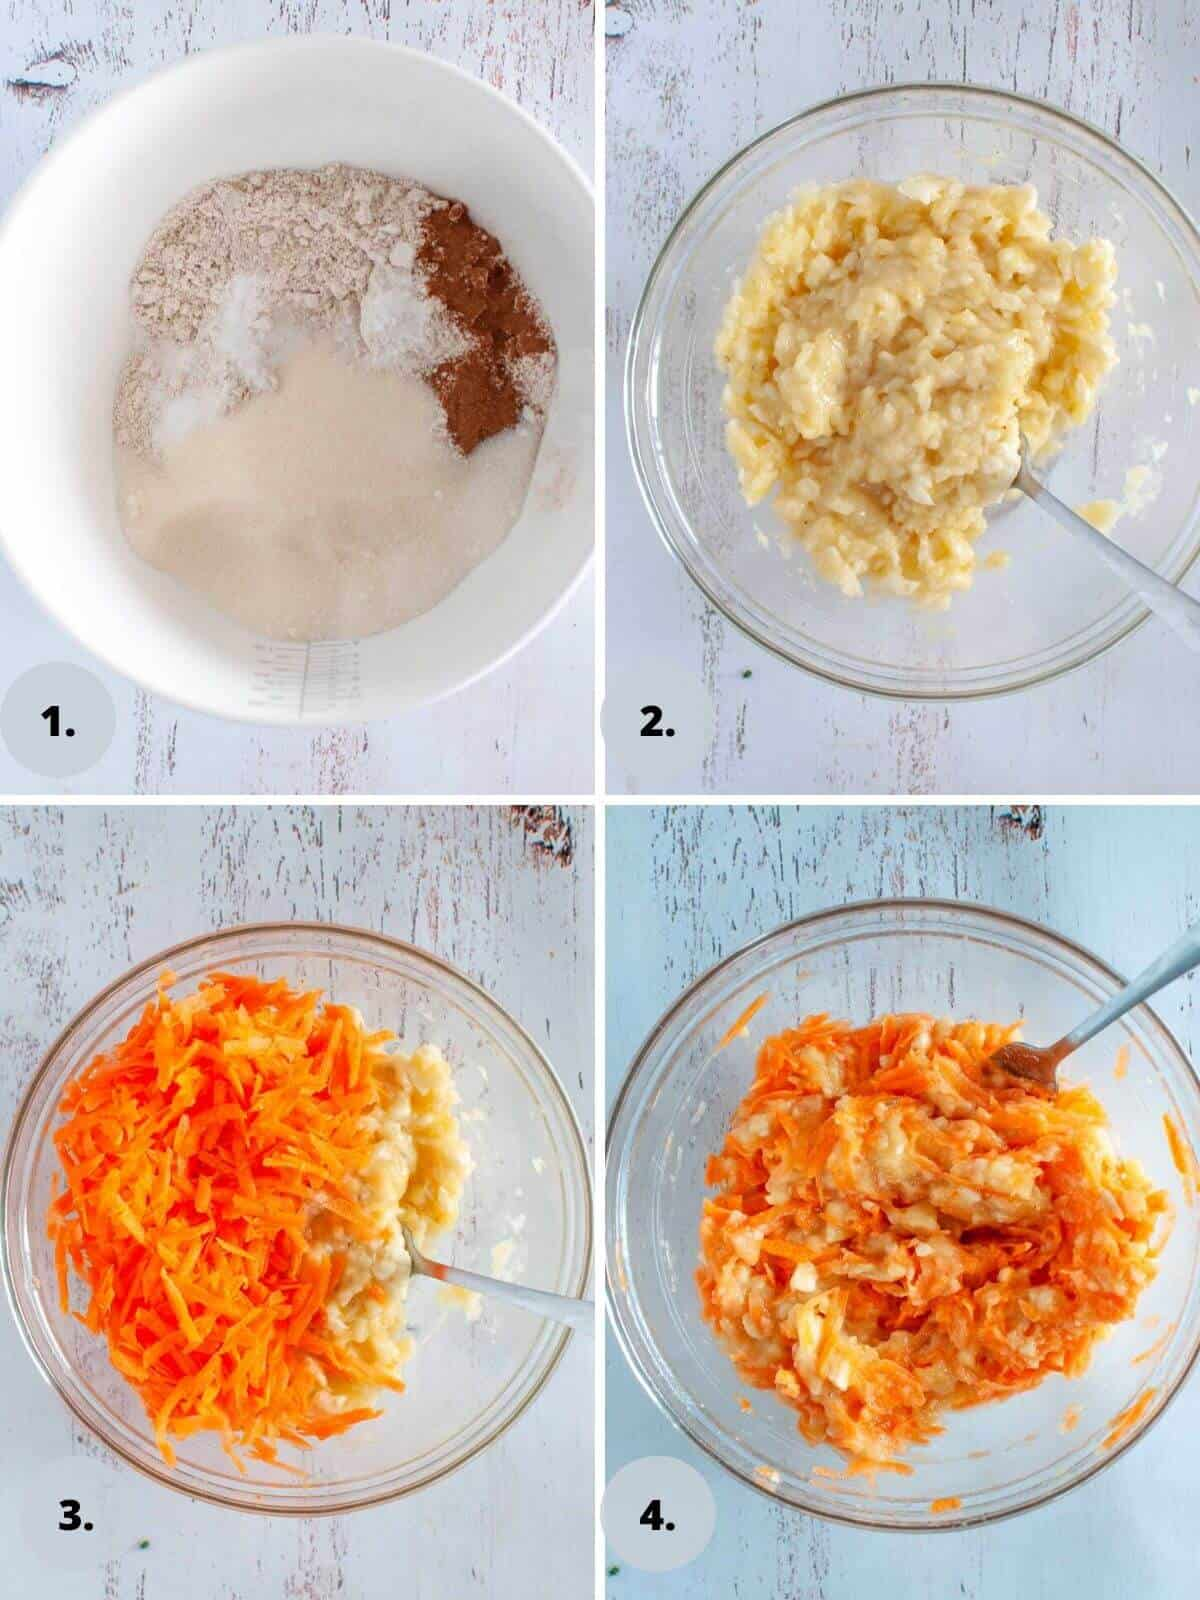 Preparing the dry ingredients and banana and carrot